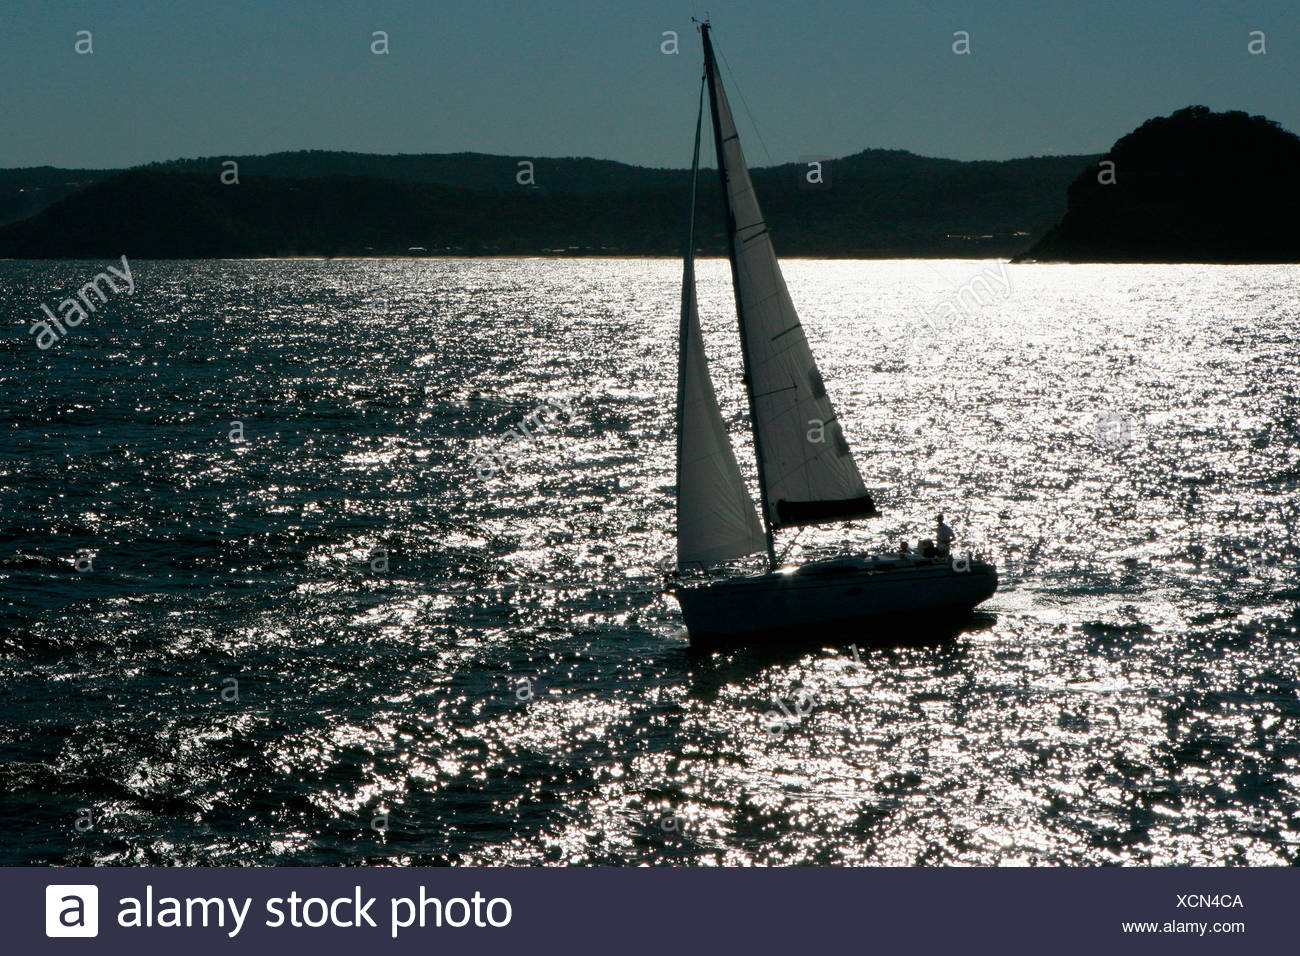 Aerial view of a sailing yacht cruising in Pittwater on the North Shore from Sydney, Australia. - Stock Image